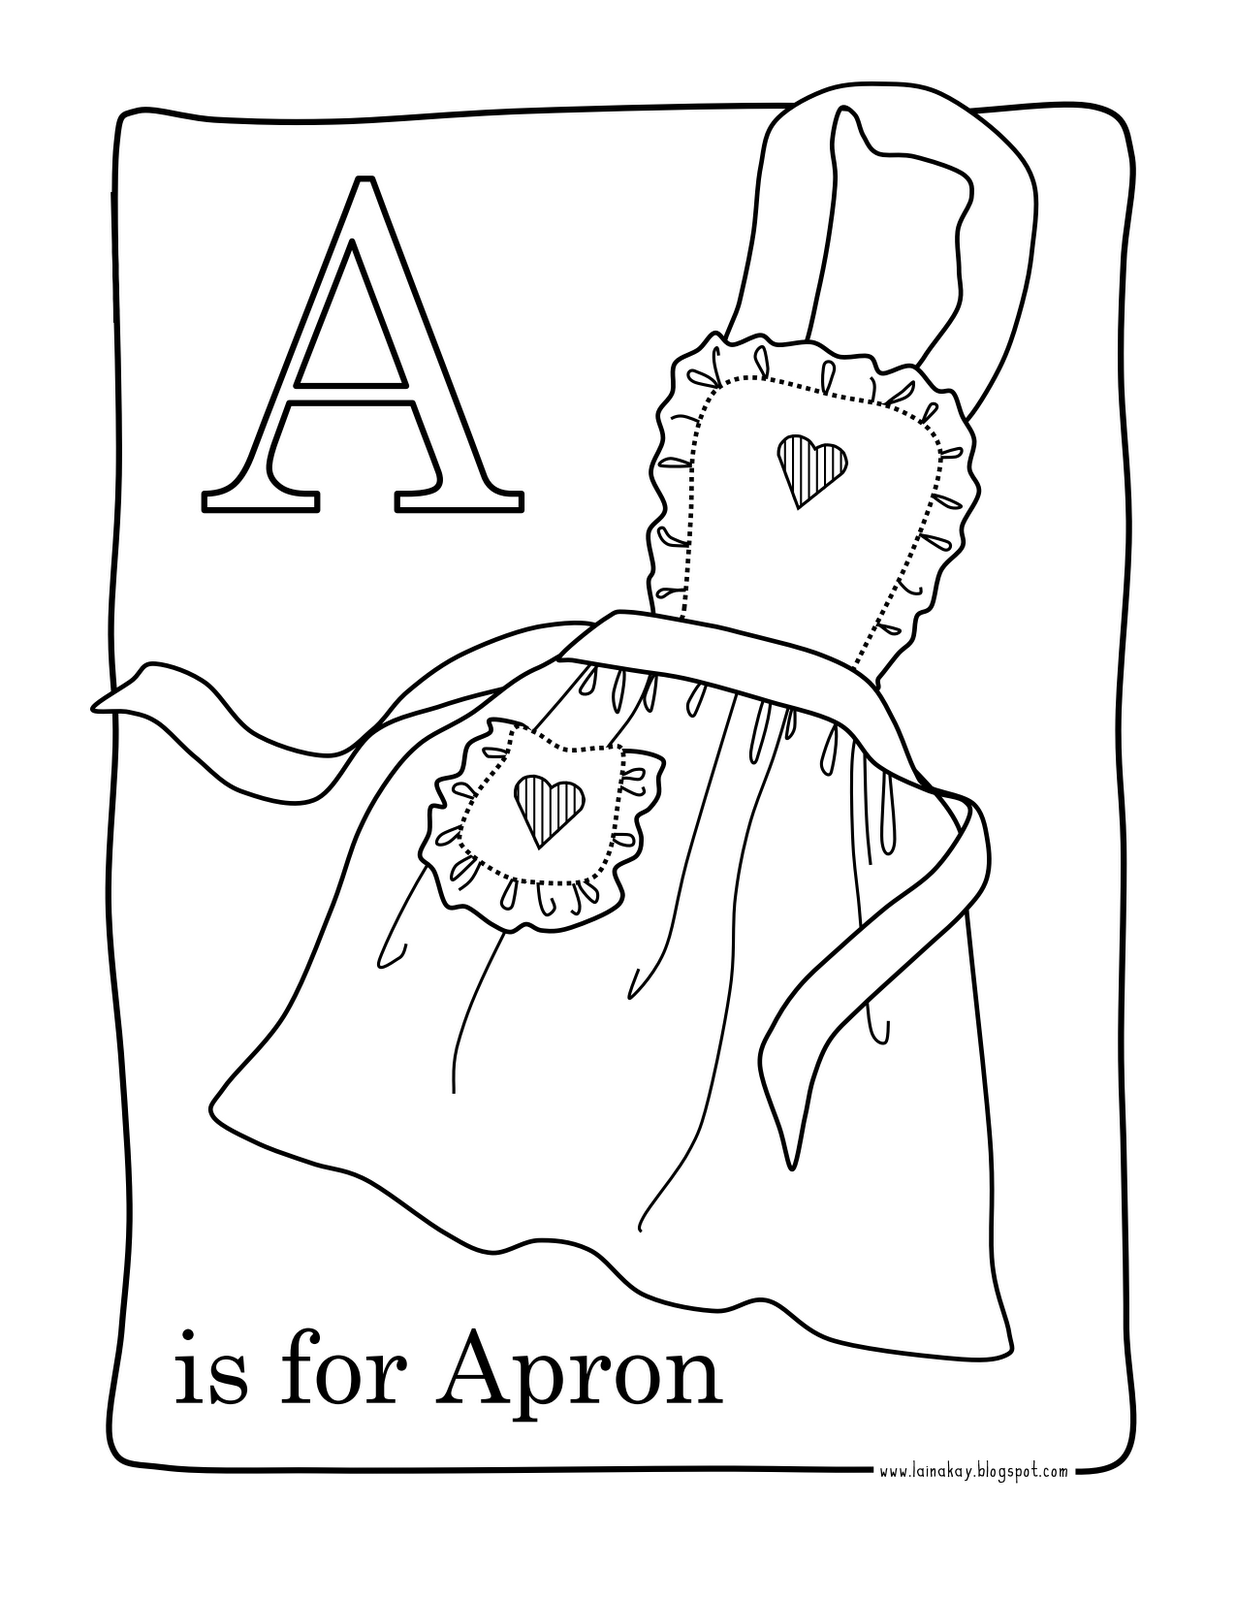 White apron hours - A Few Good Coloring Pages With Some Crayons Markers Or Colored Pencils And My Girls Are Good To Go For Hours Literally